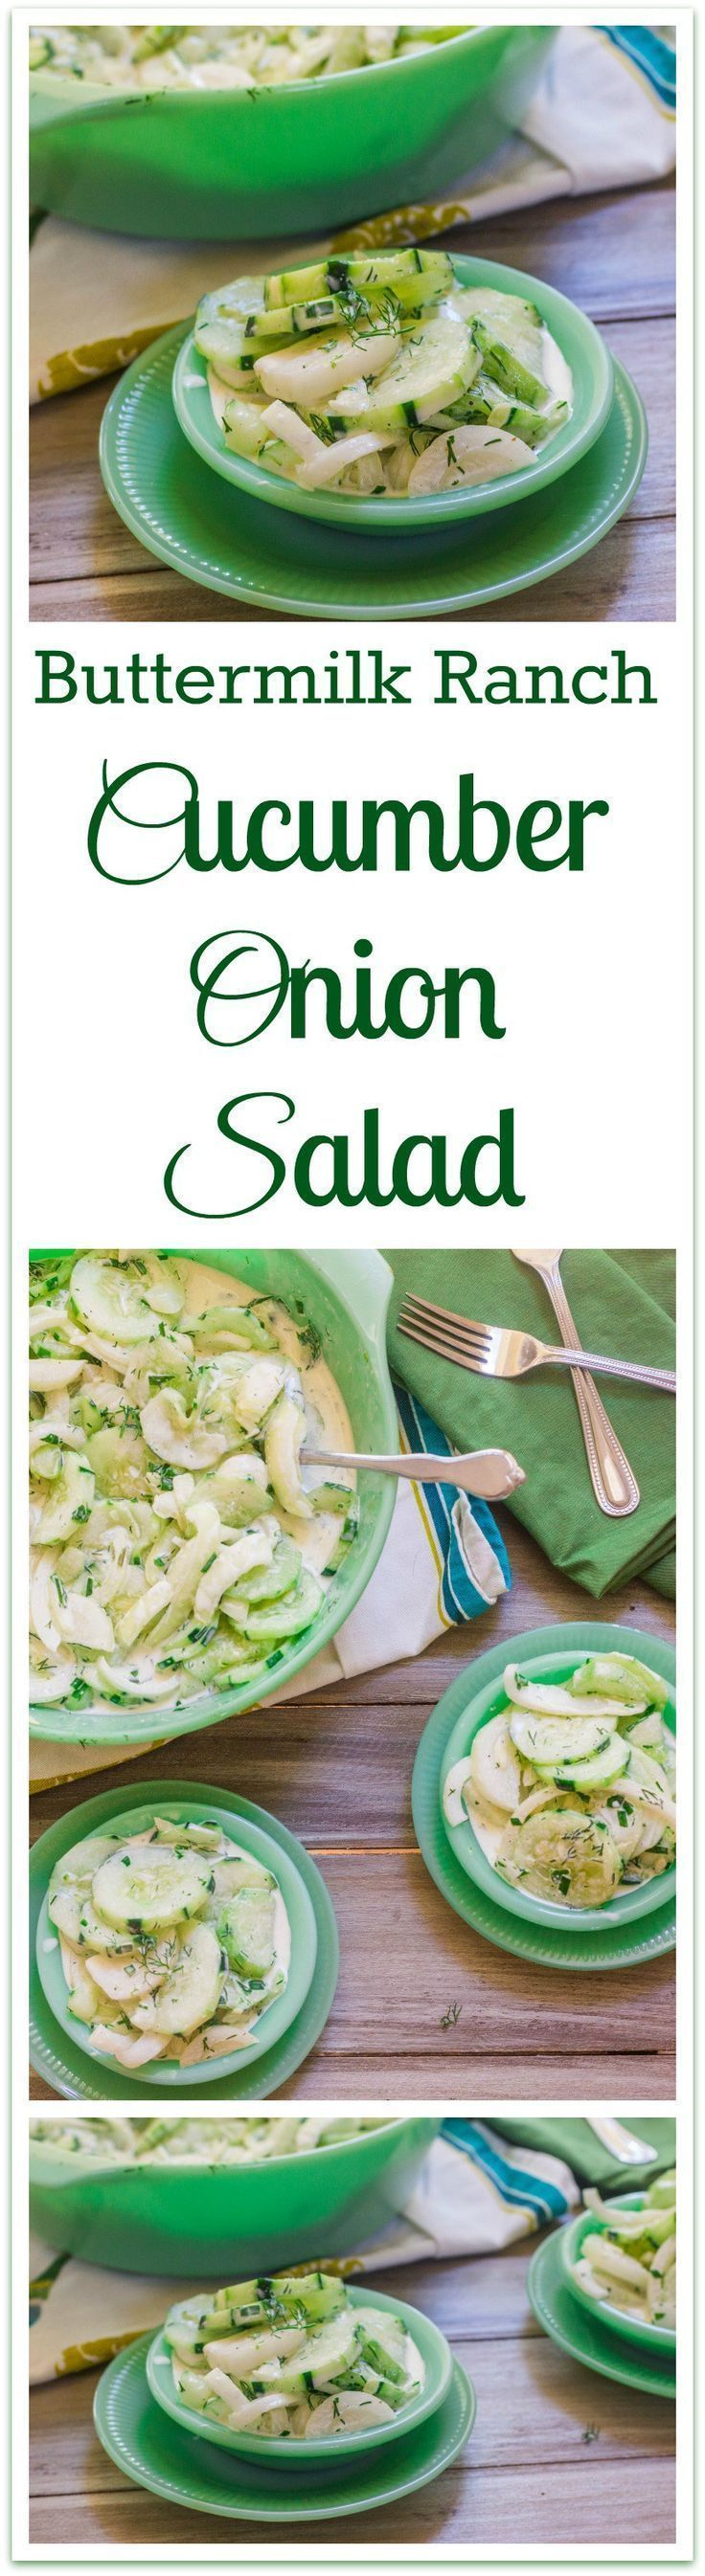 Buttermilk Ranch Cucumber Onion Salad. Refreshing salad made of summer favorites. #cucumber #onion #salad